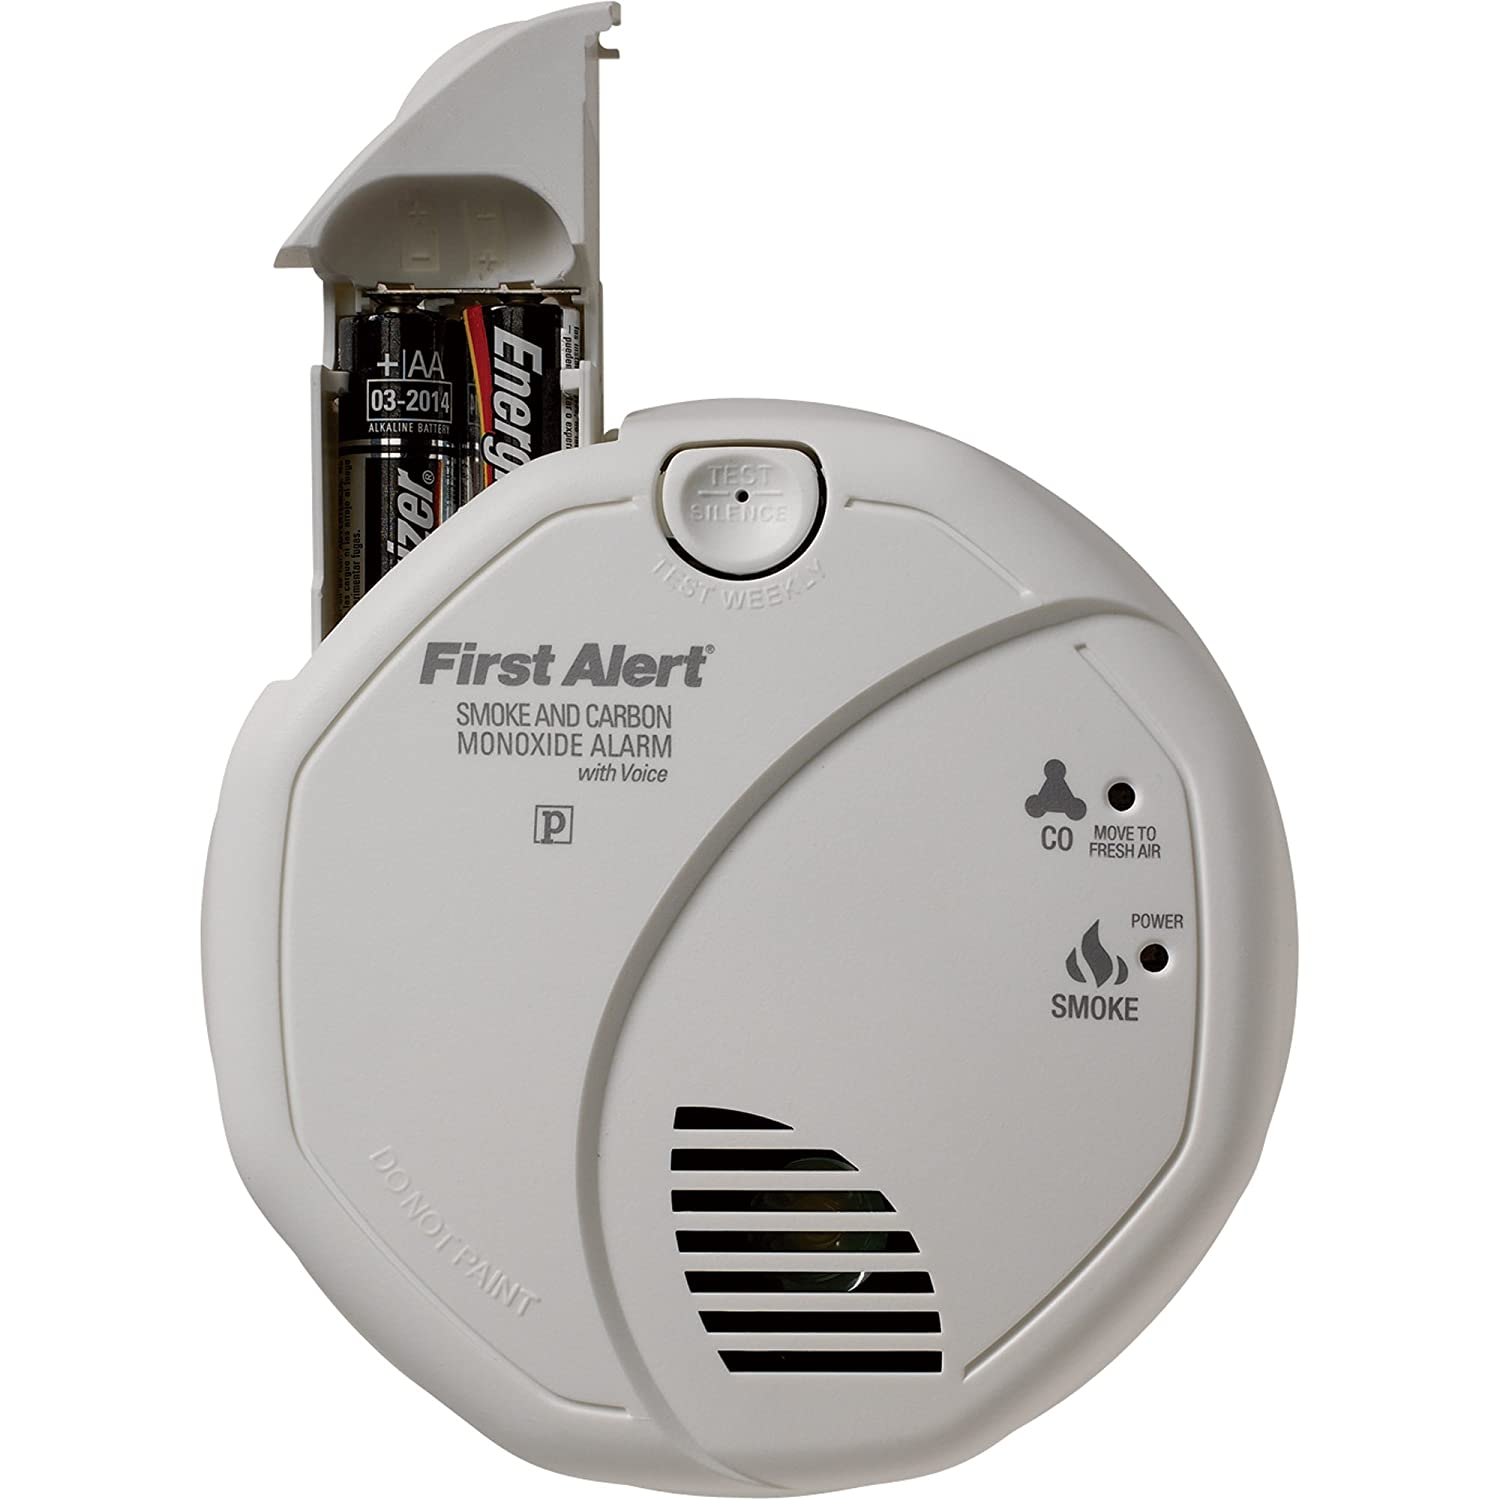 First Alert Talking 2-in-1 Smoke & Carbon Monoxide Alarm-3-Pk, W/Voice and Location, Model#SC07CN - - Amazon.com